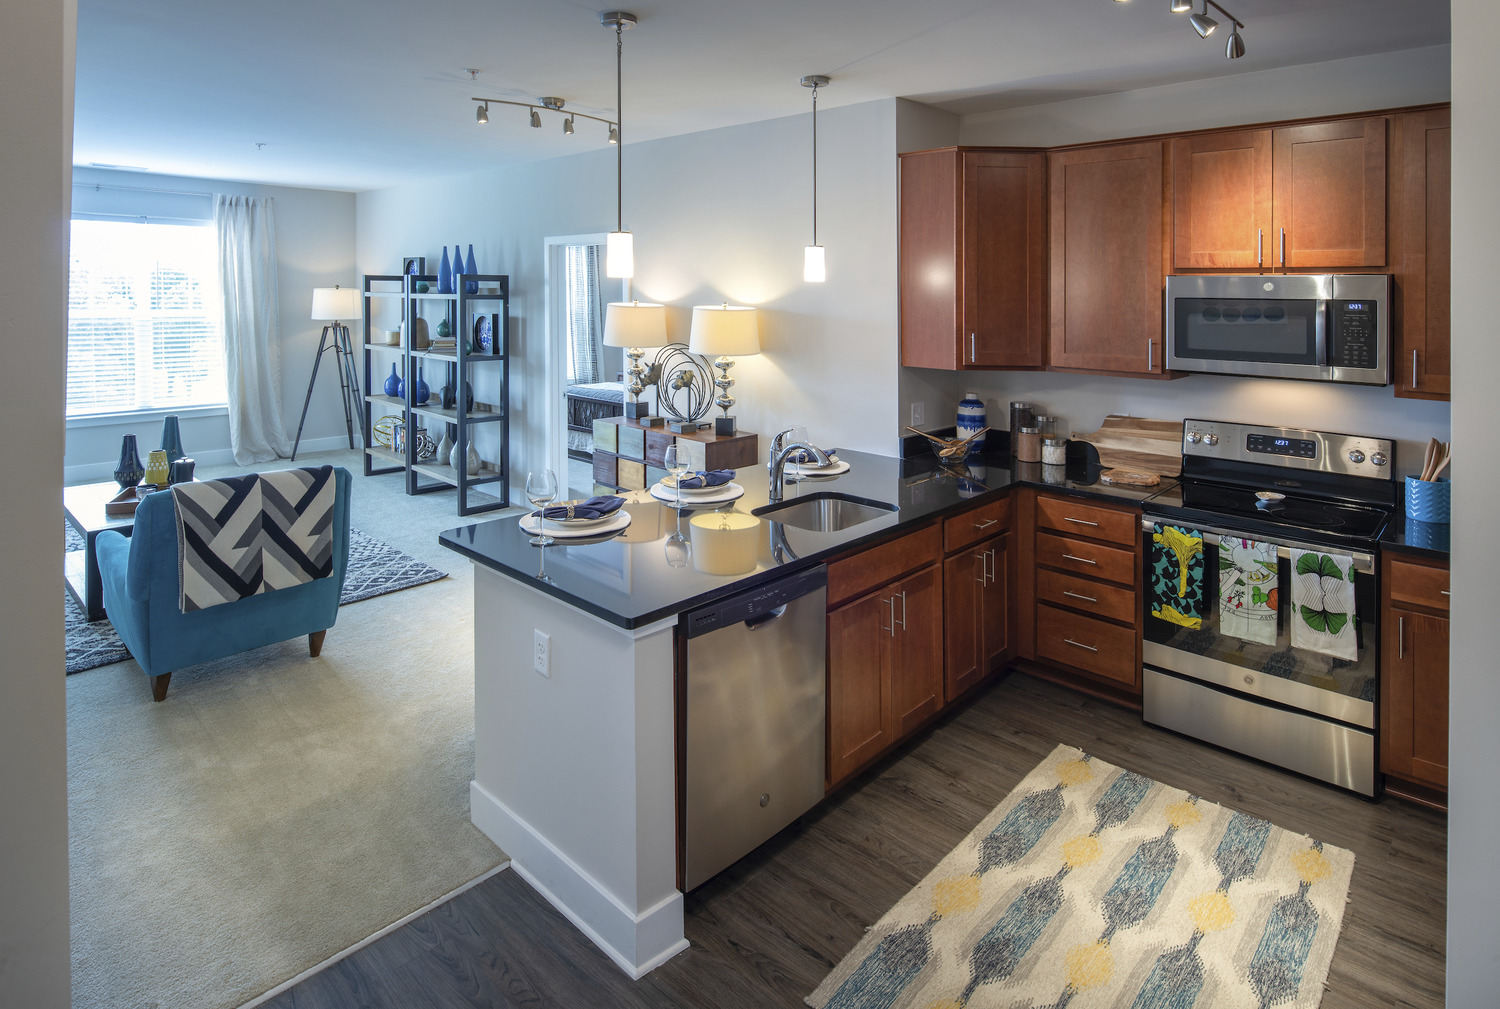 CBG builds The Elms at Century, a 300-Unit Market-Rate Apartment Community with Amenities in Germantown, MD - Image #3